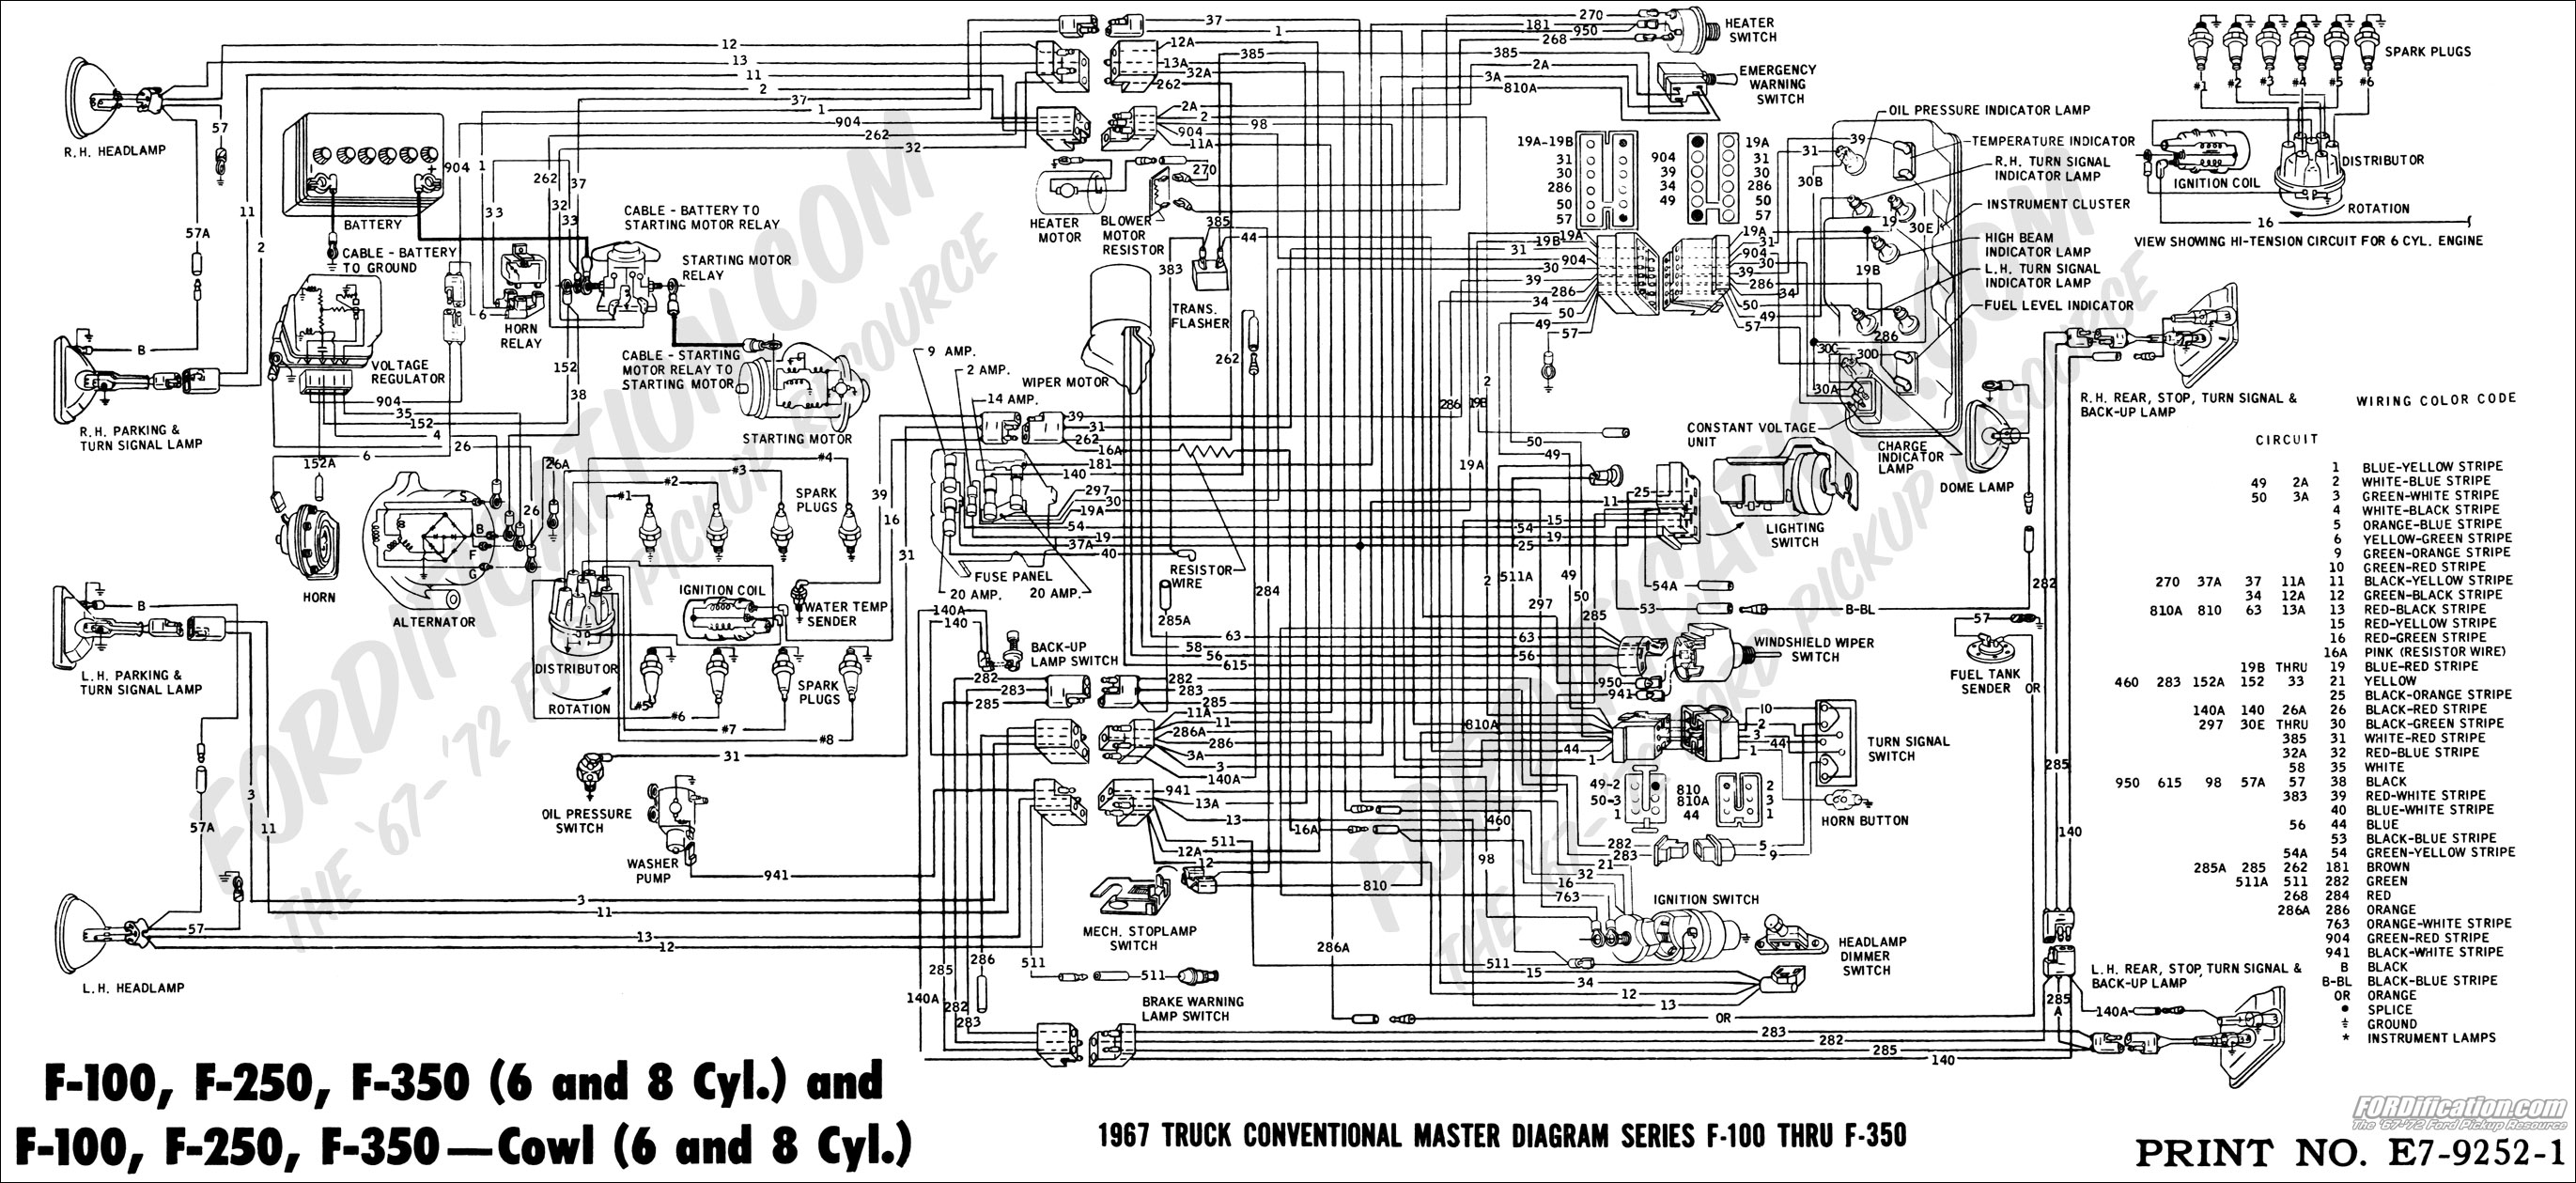 67masterdiagram ford truck technical drawings and schematics section h wiring ford f150 wiring diagram at mifinder.co